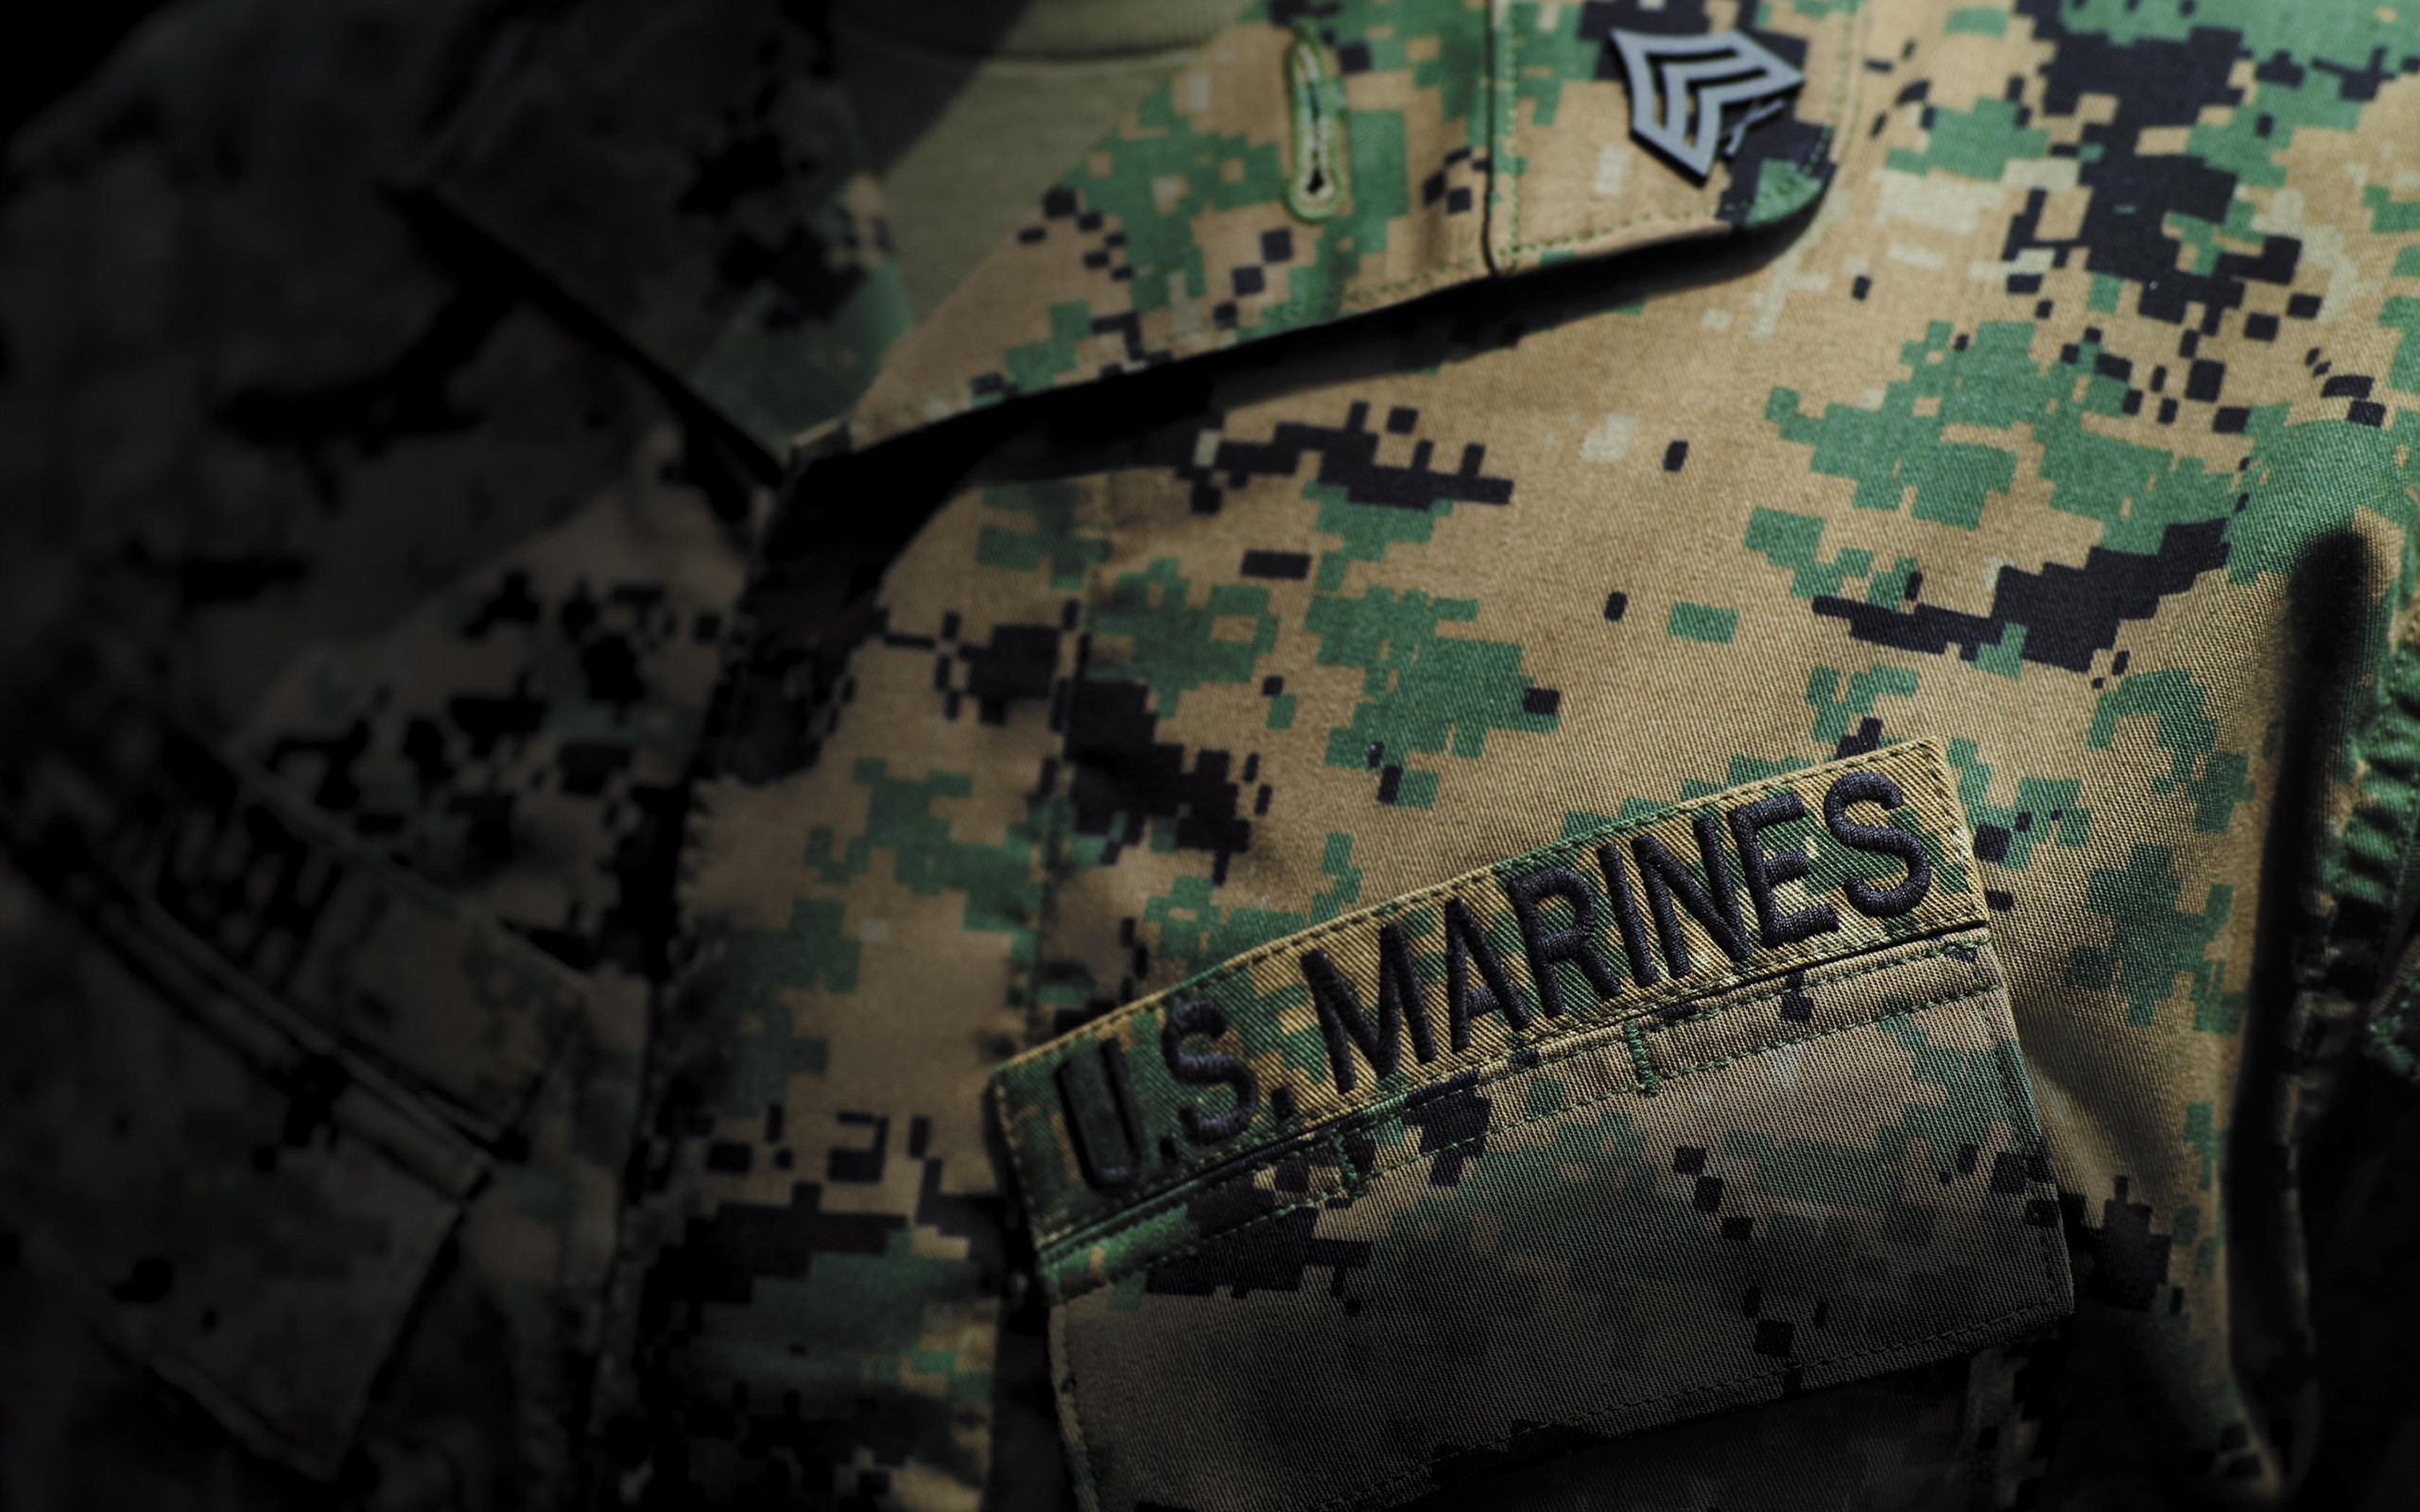 2560x1600 Us Marine Corps Wallpaper | Art Wallpapers | Pinterest | Marine FC,  Wallpaper and Wallpaper art